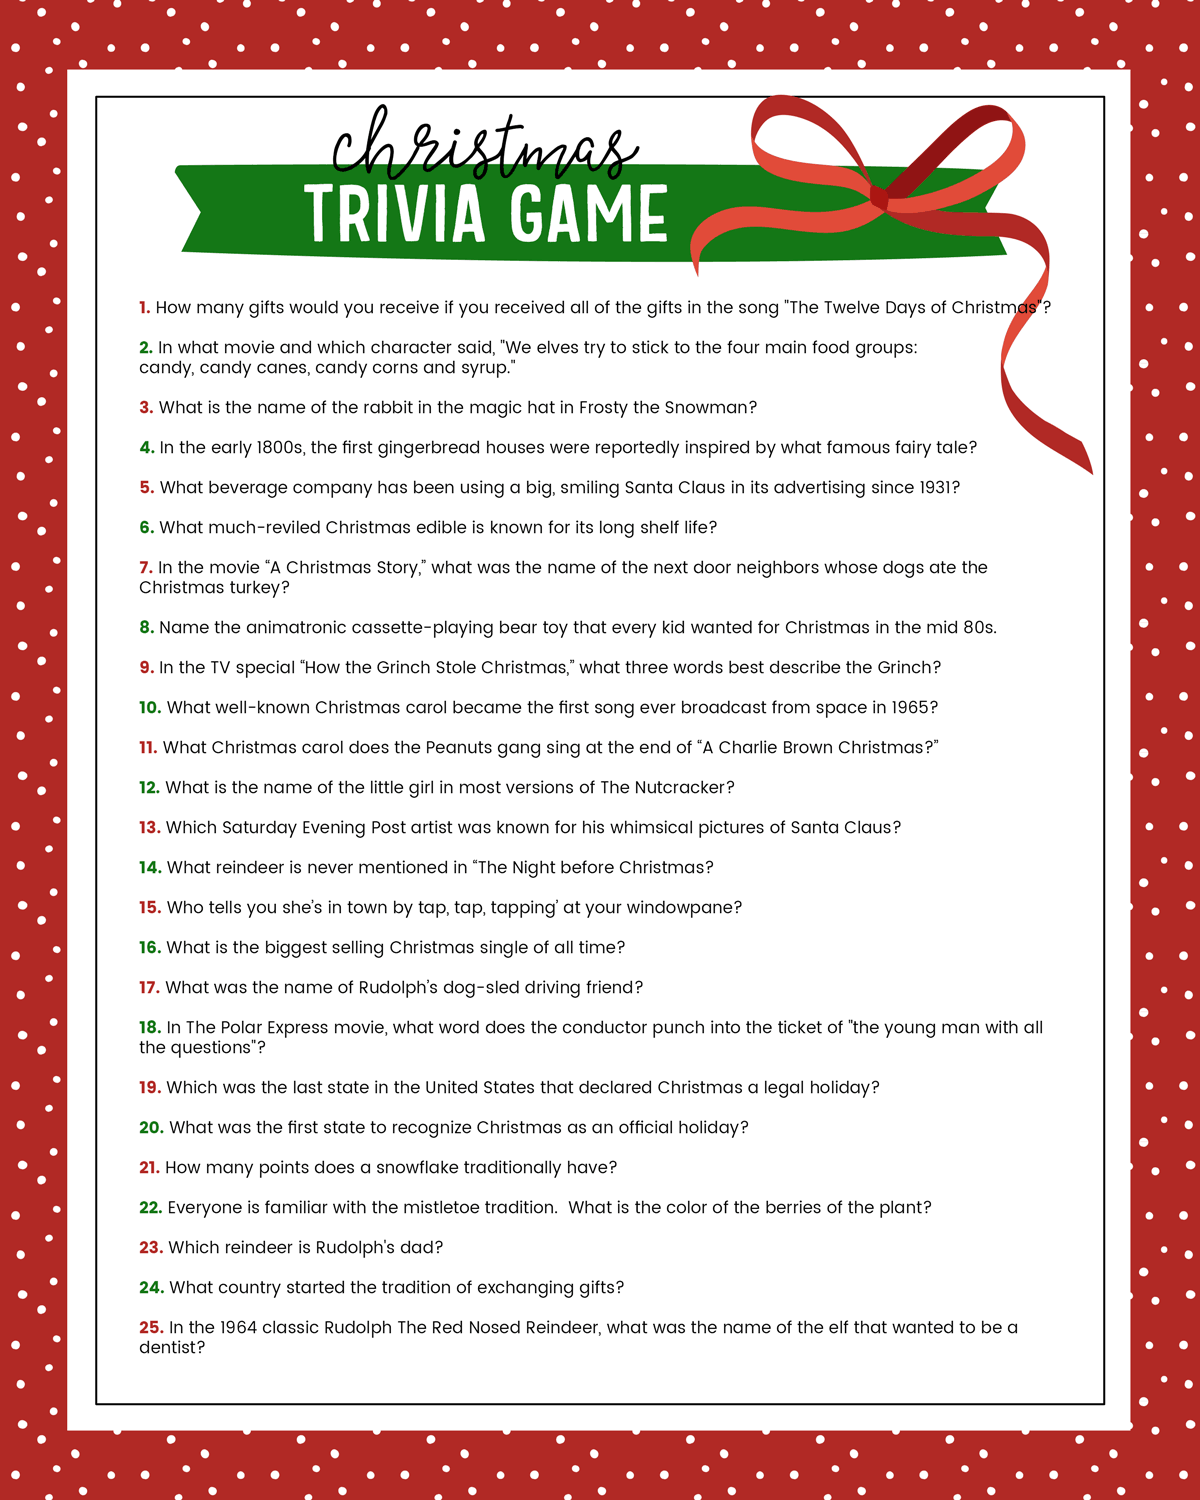 photograph about Christmas Trivia Game Printable named Cost-free Xmas Trivia Sport Lil Luna